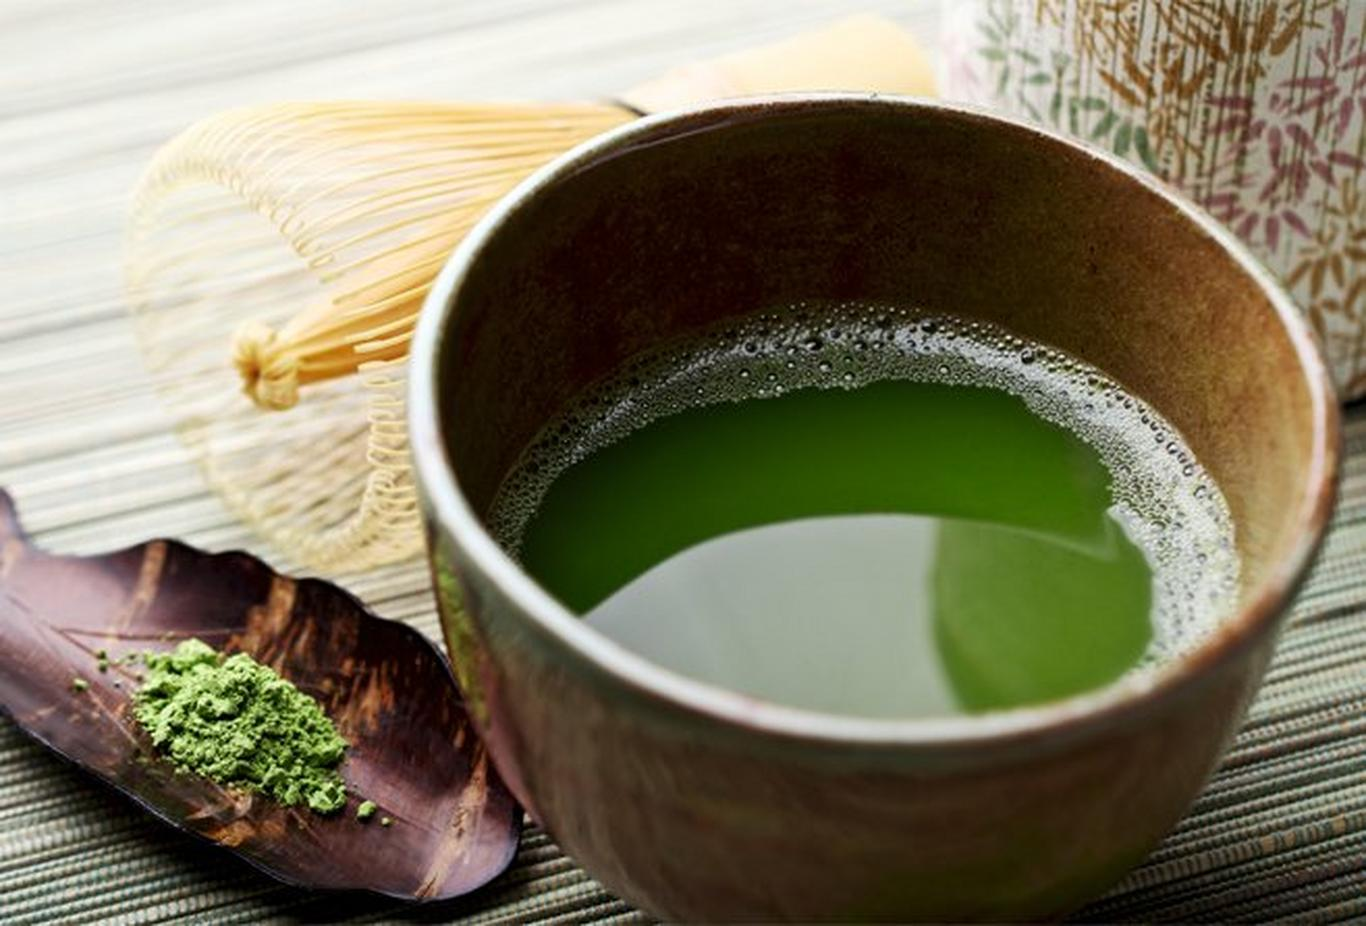 Green tea is high in catechins, a type of antioxidant, which also protect the skin from UV damage.